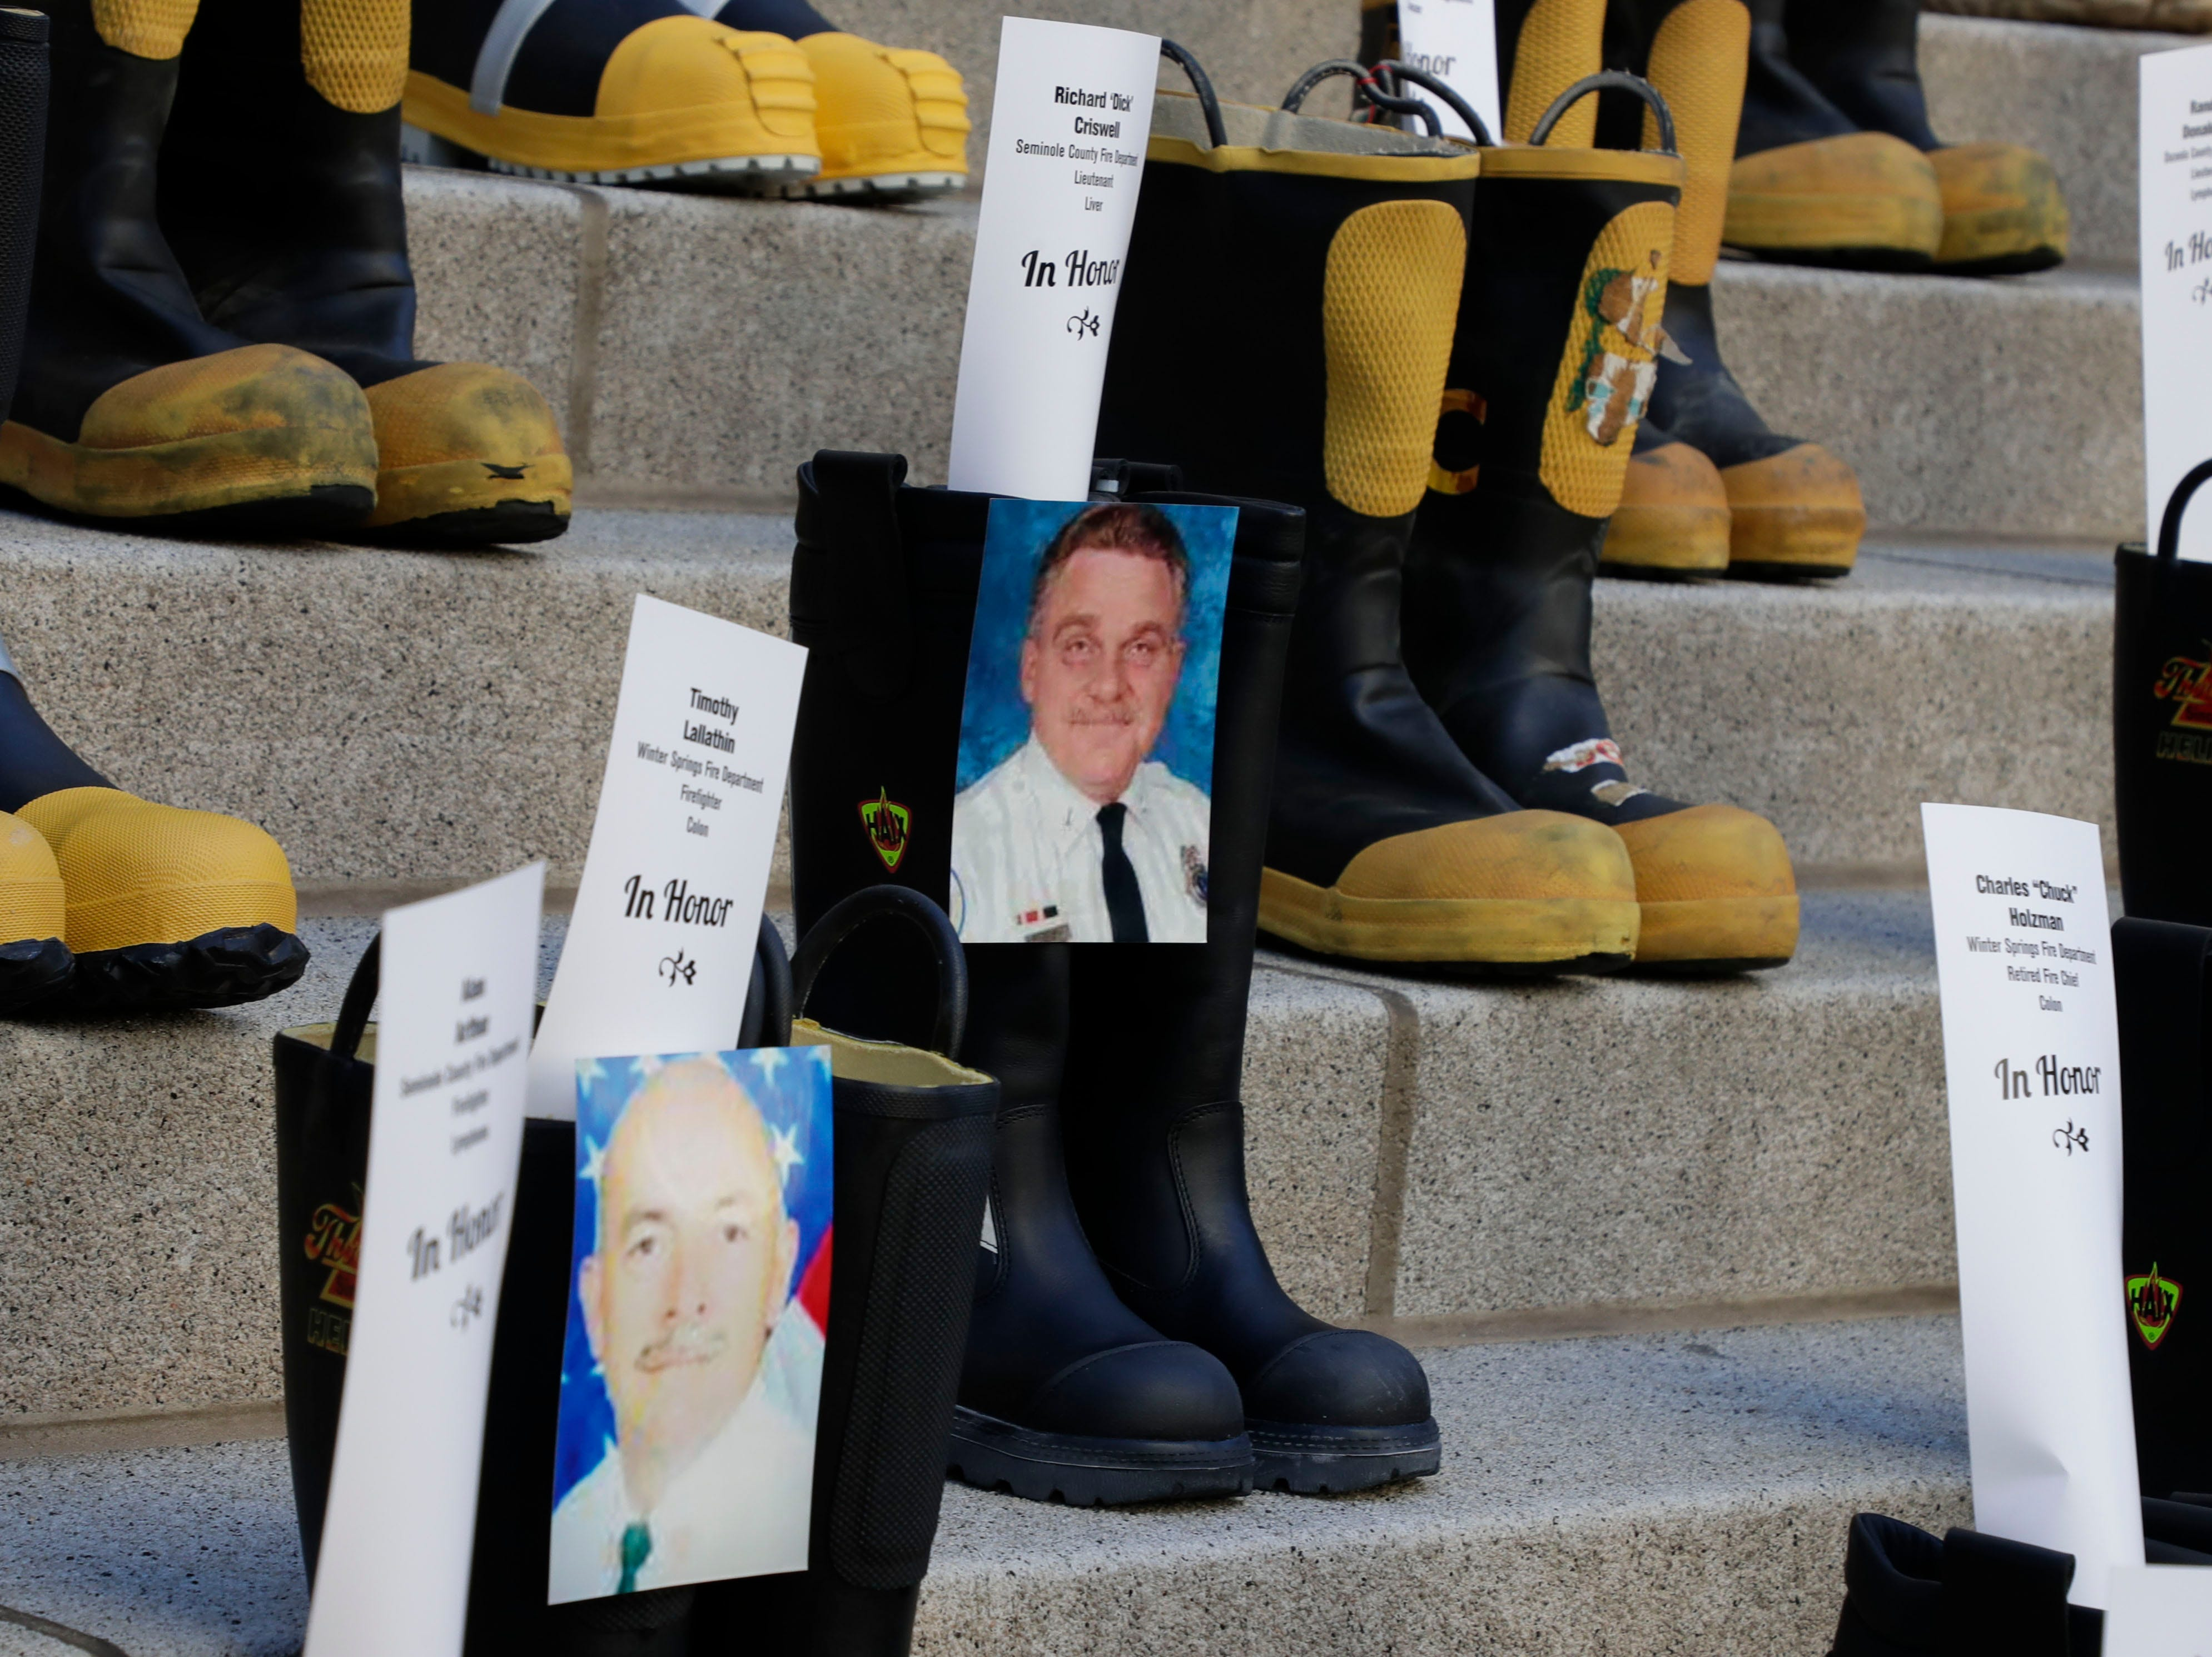 Photos are taped to boots honoring firefighters who battled cancer. Firefighters and their families from around the state create a display at the Capitol of 500 pairs of boots in honor of firefighters who lost their battle or are battling with cancer caused from smoke inhalation and carcinogens Thursday, March 7, 2019. The state of Florida is one of five states in the country that does not have a bill acknowledging cancer is a job-related illness.